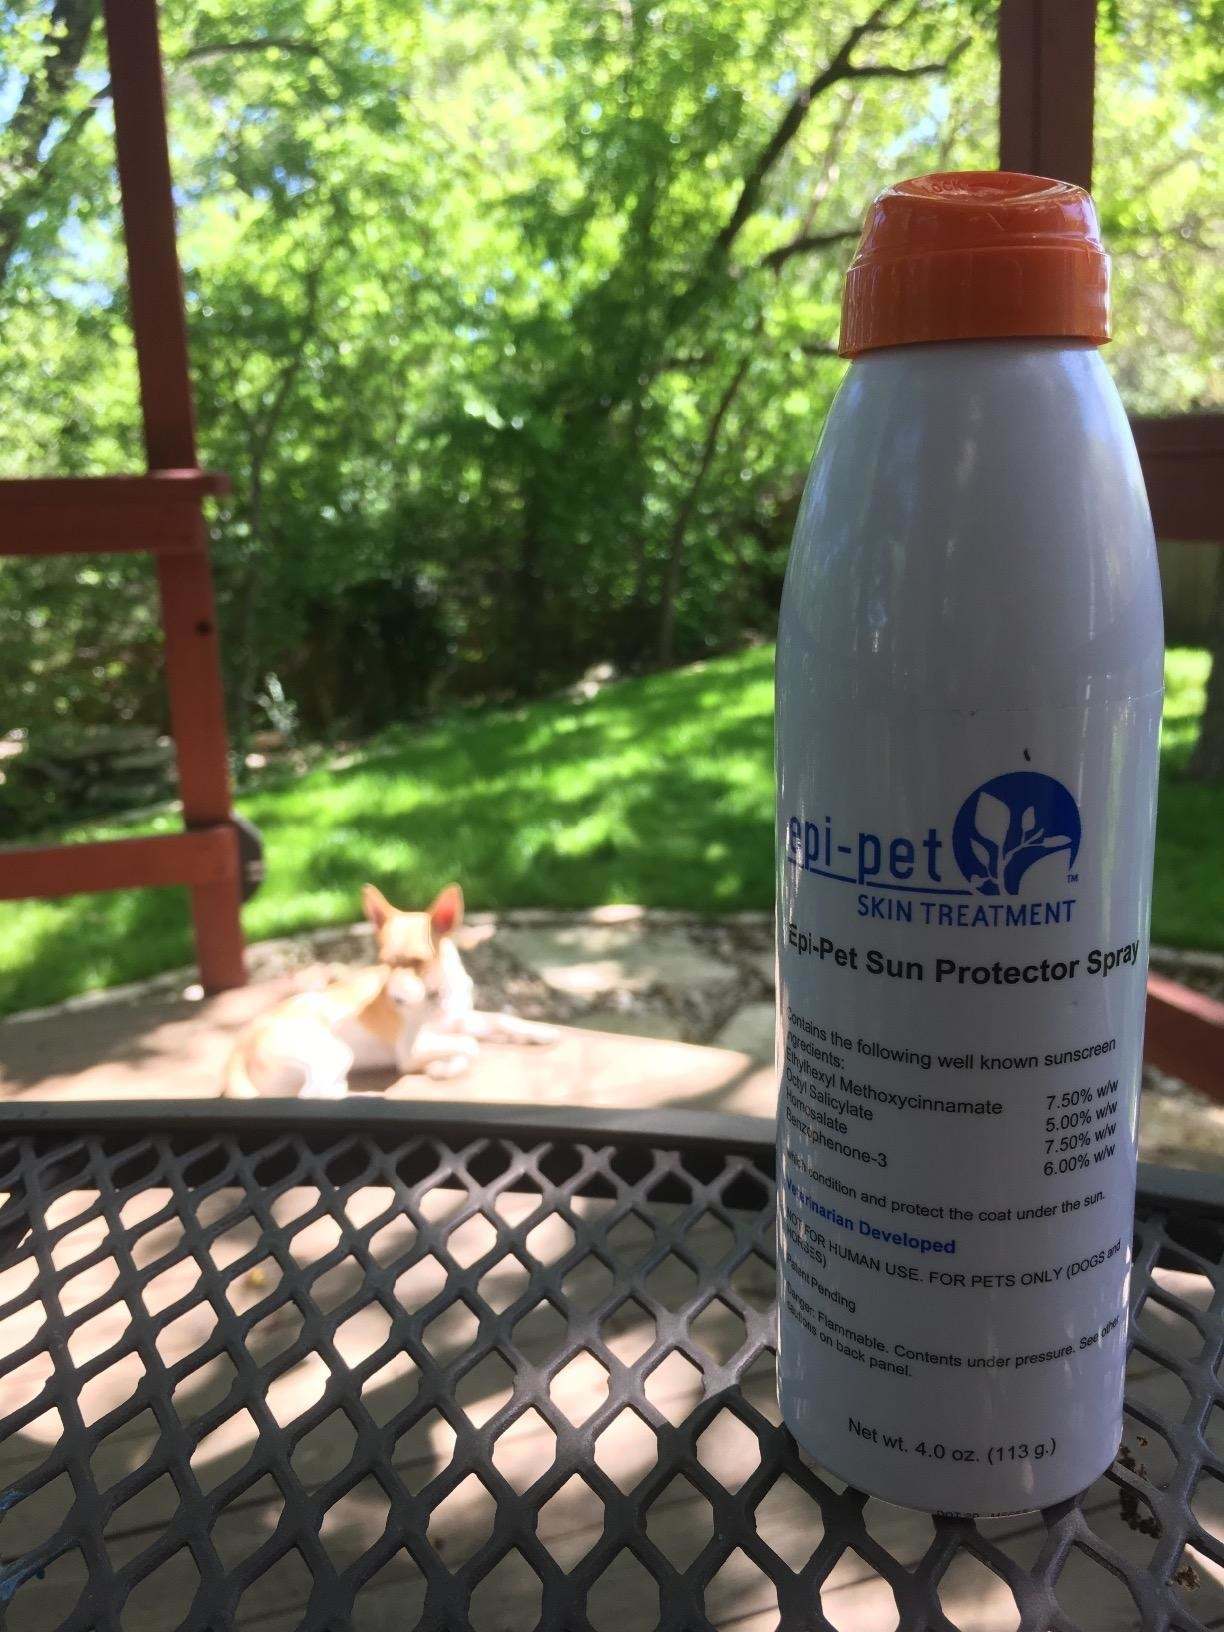 The spray, which comes in a cylindrical spray can